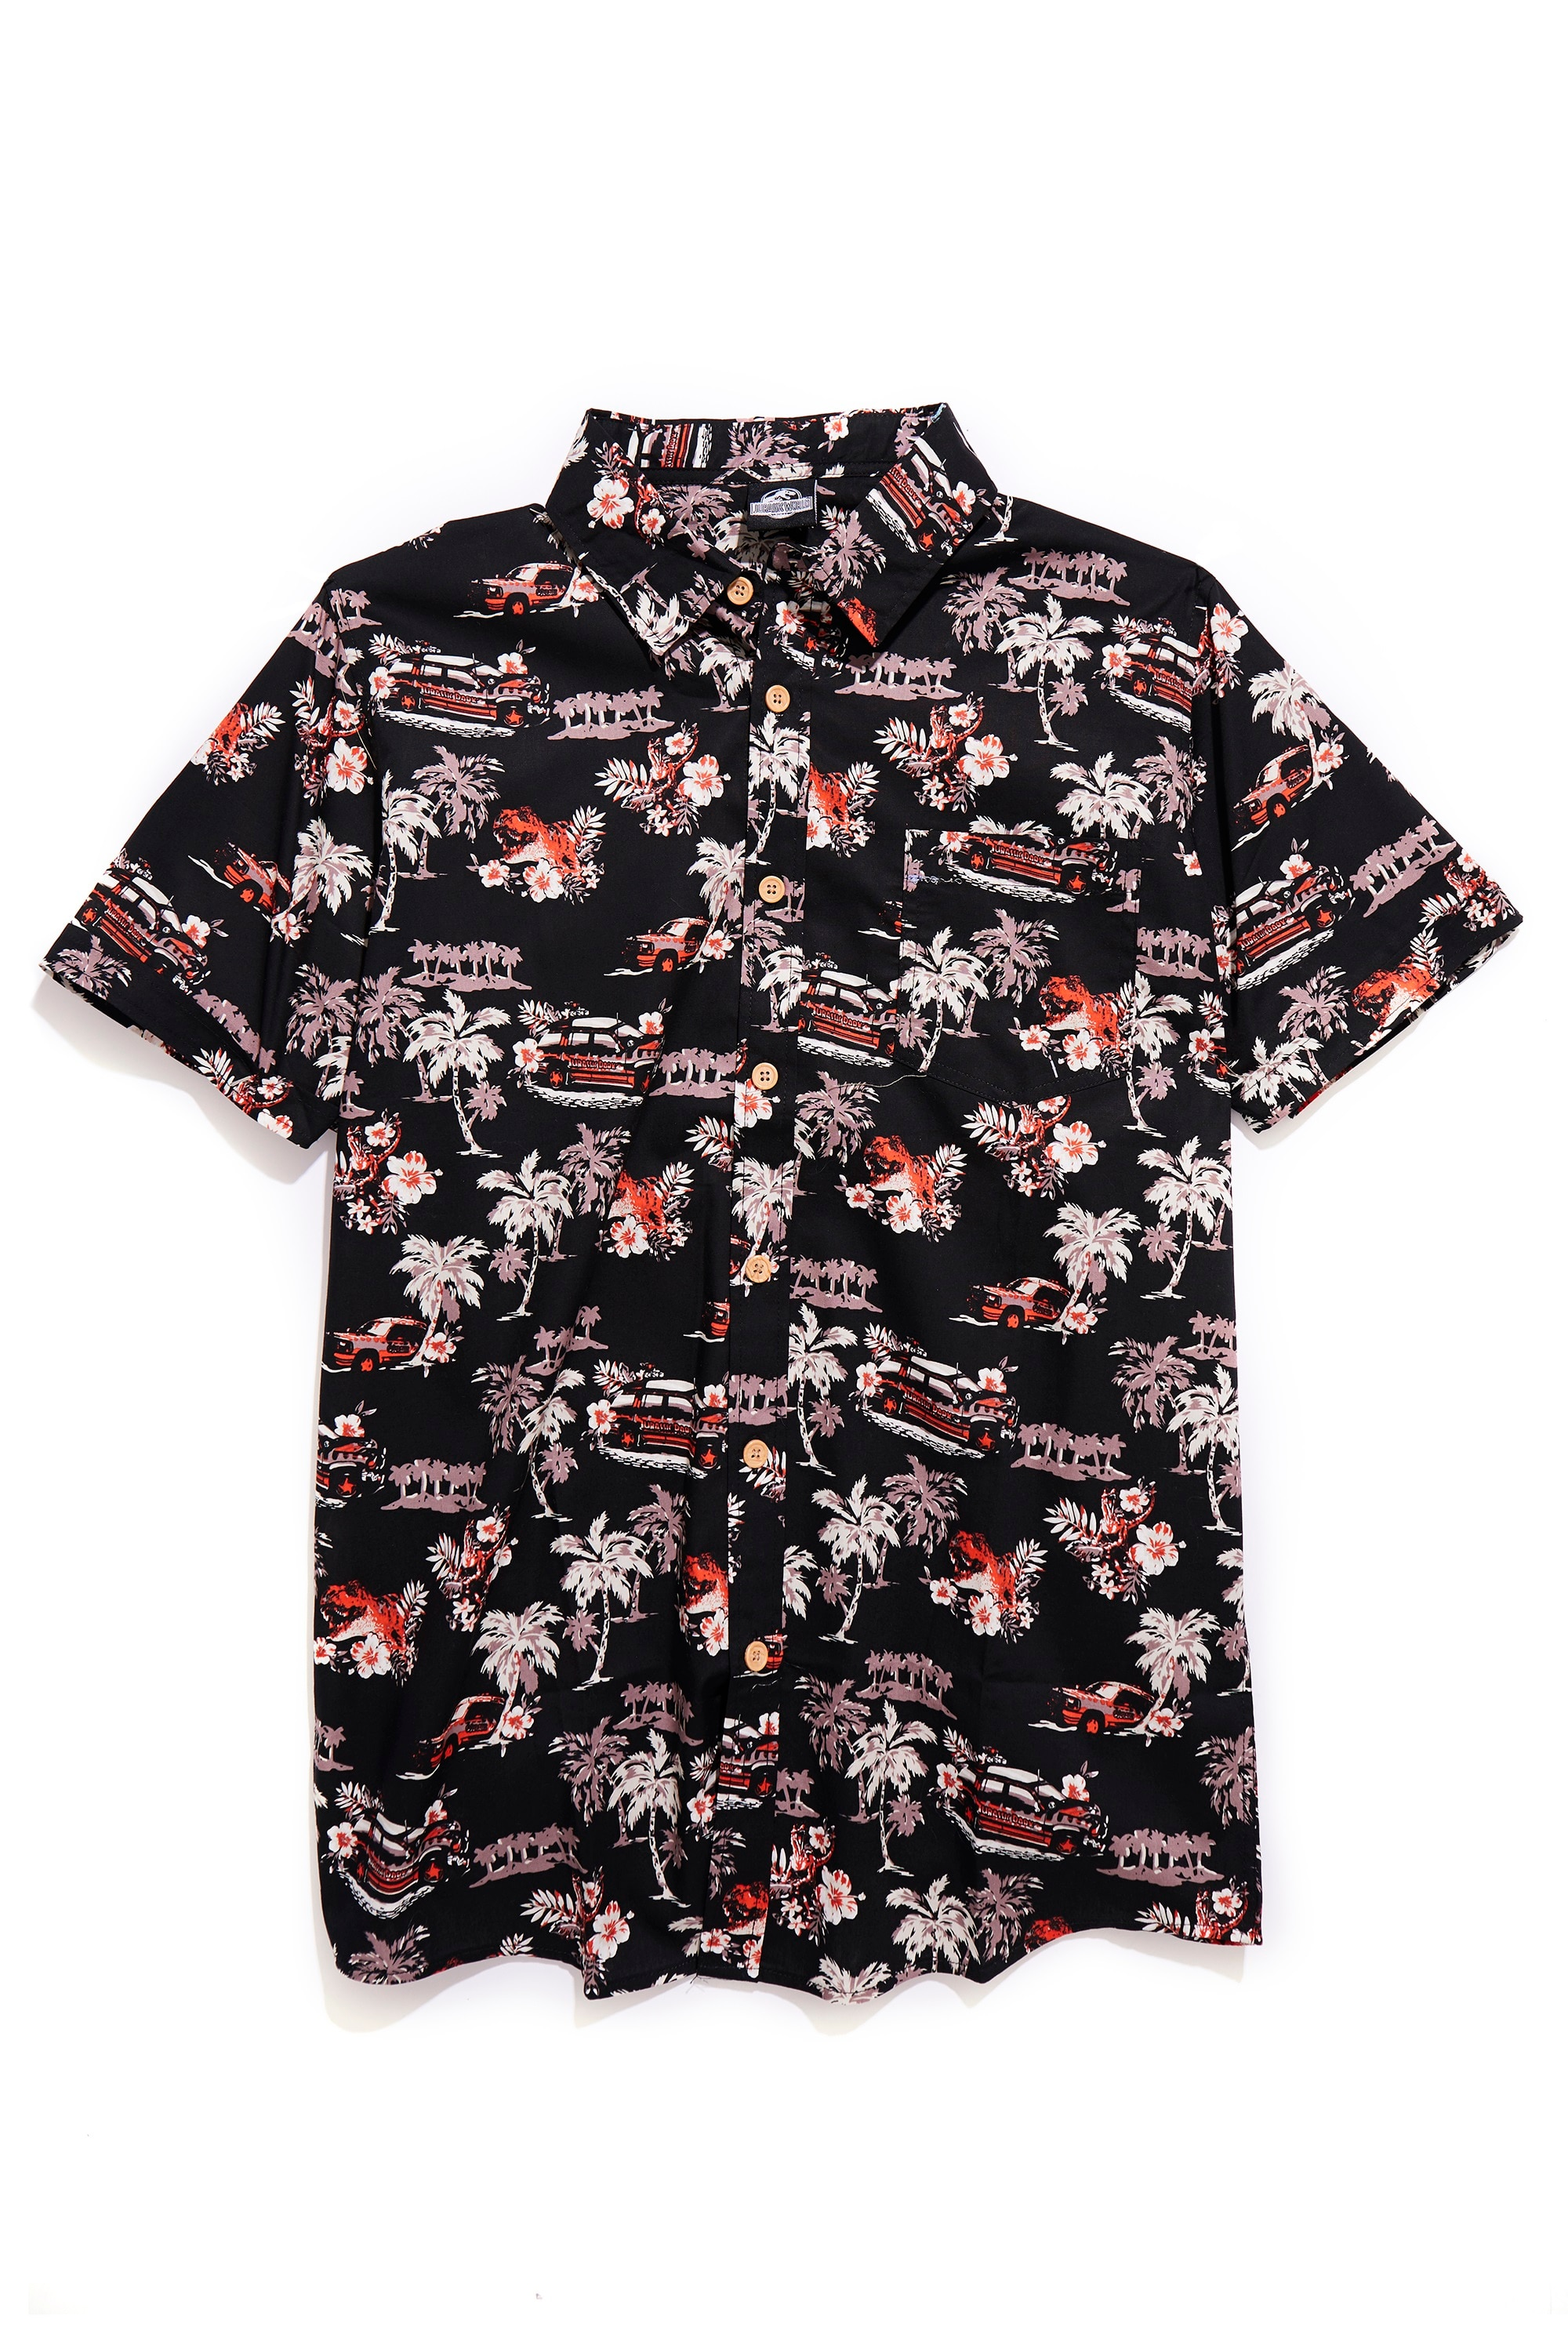 Jurassic World Van Allover Print Woven Button Up 1 - Exclusive: BoxLunch's JURASSIC WORLD Collection for Humans and Pets